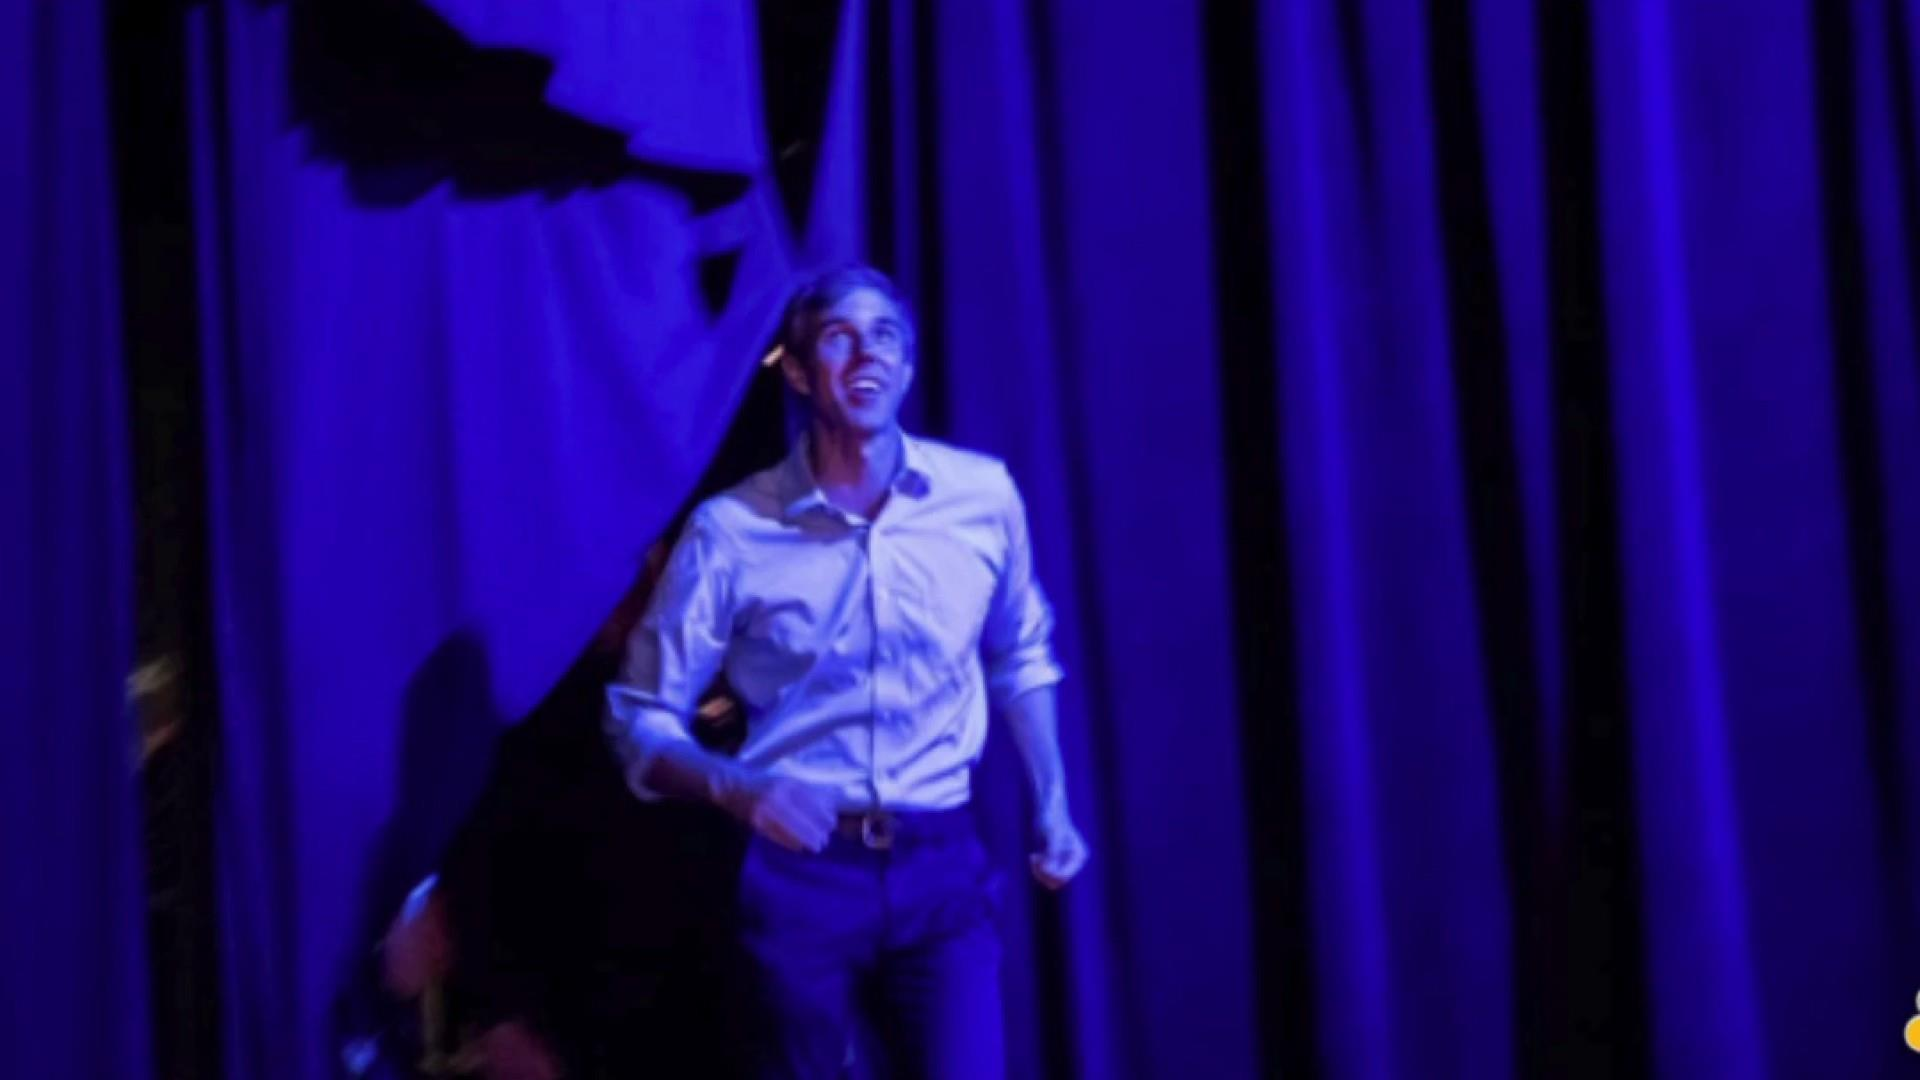 2020 Watch: Obama met with Beto O'Rourke, Andrew Gillum